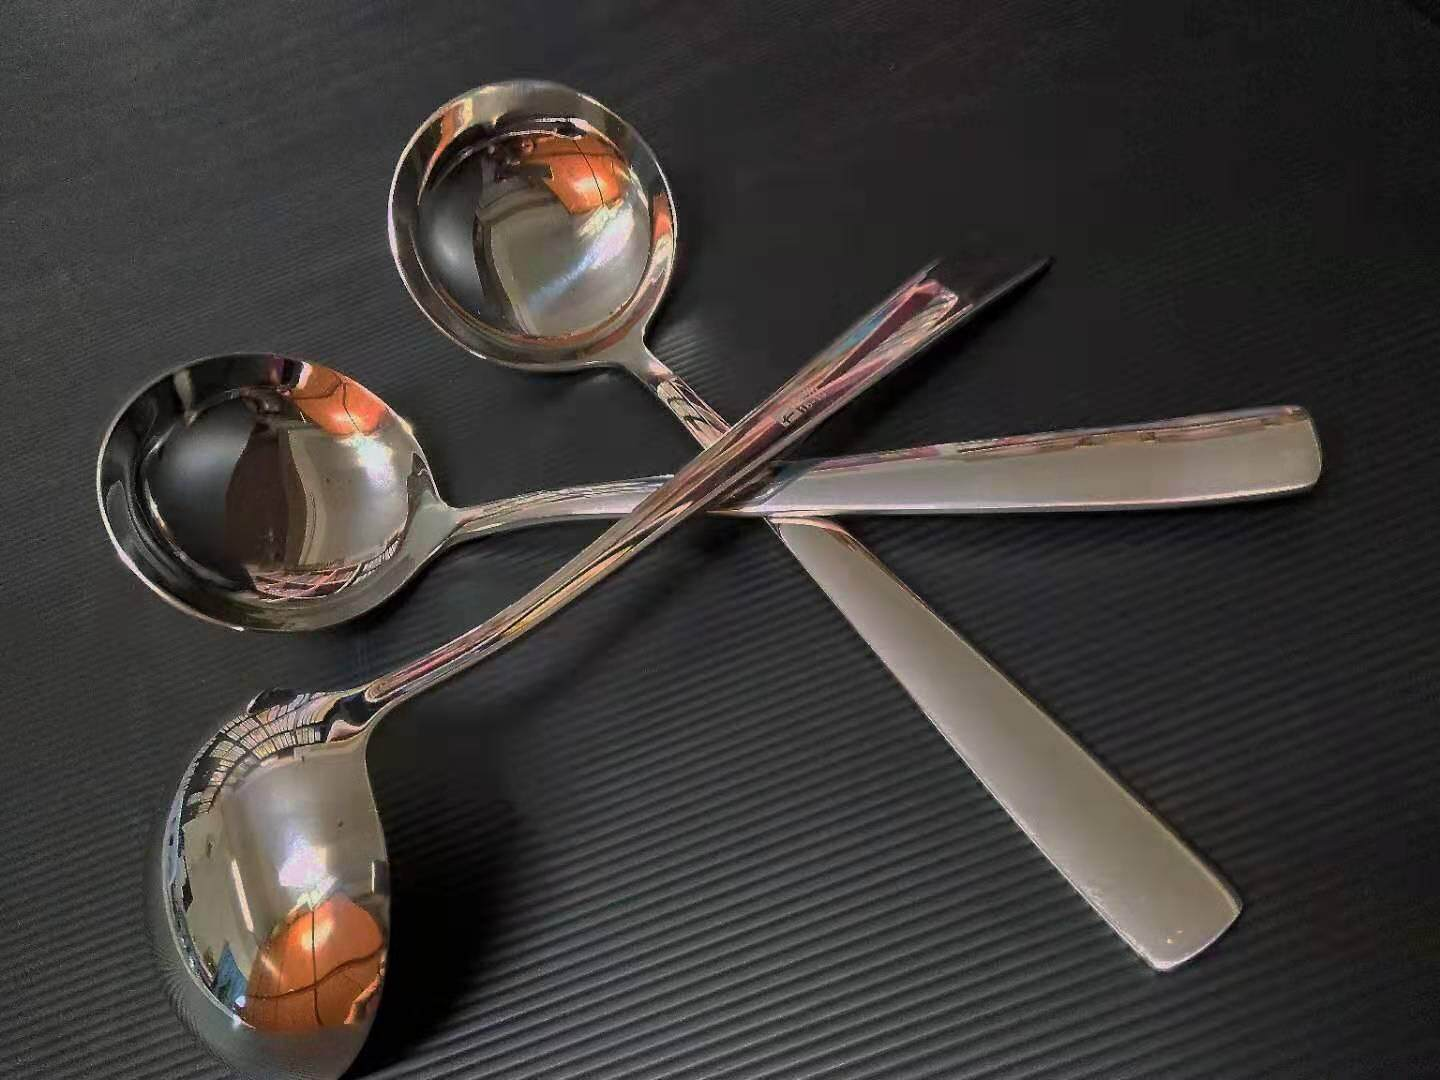 STAINLESS STEEL [18-10] SOUP LADLE